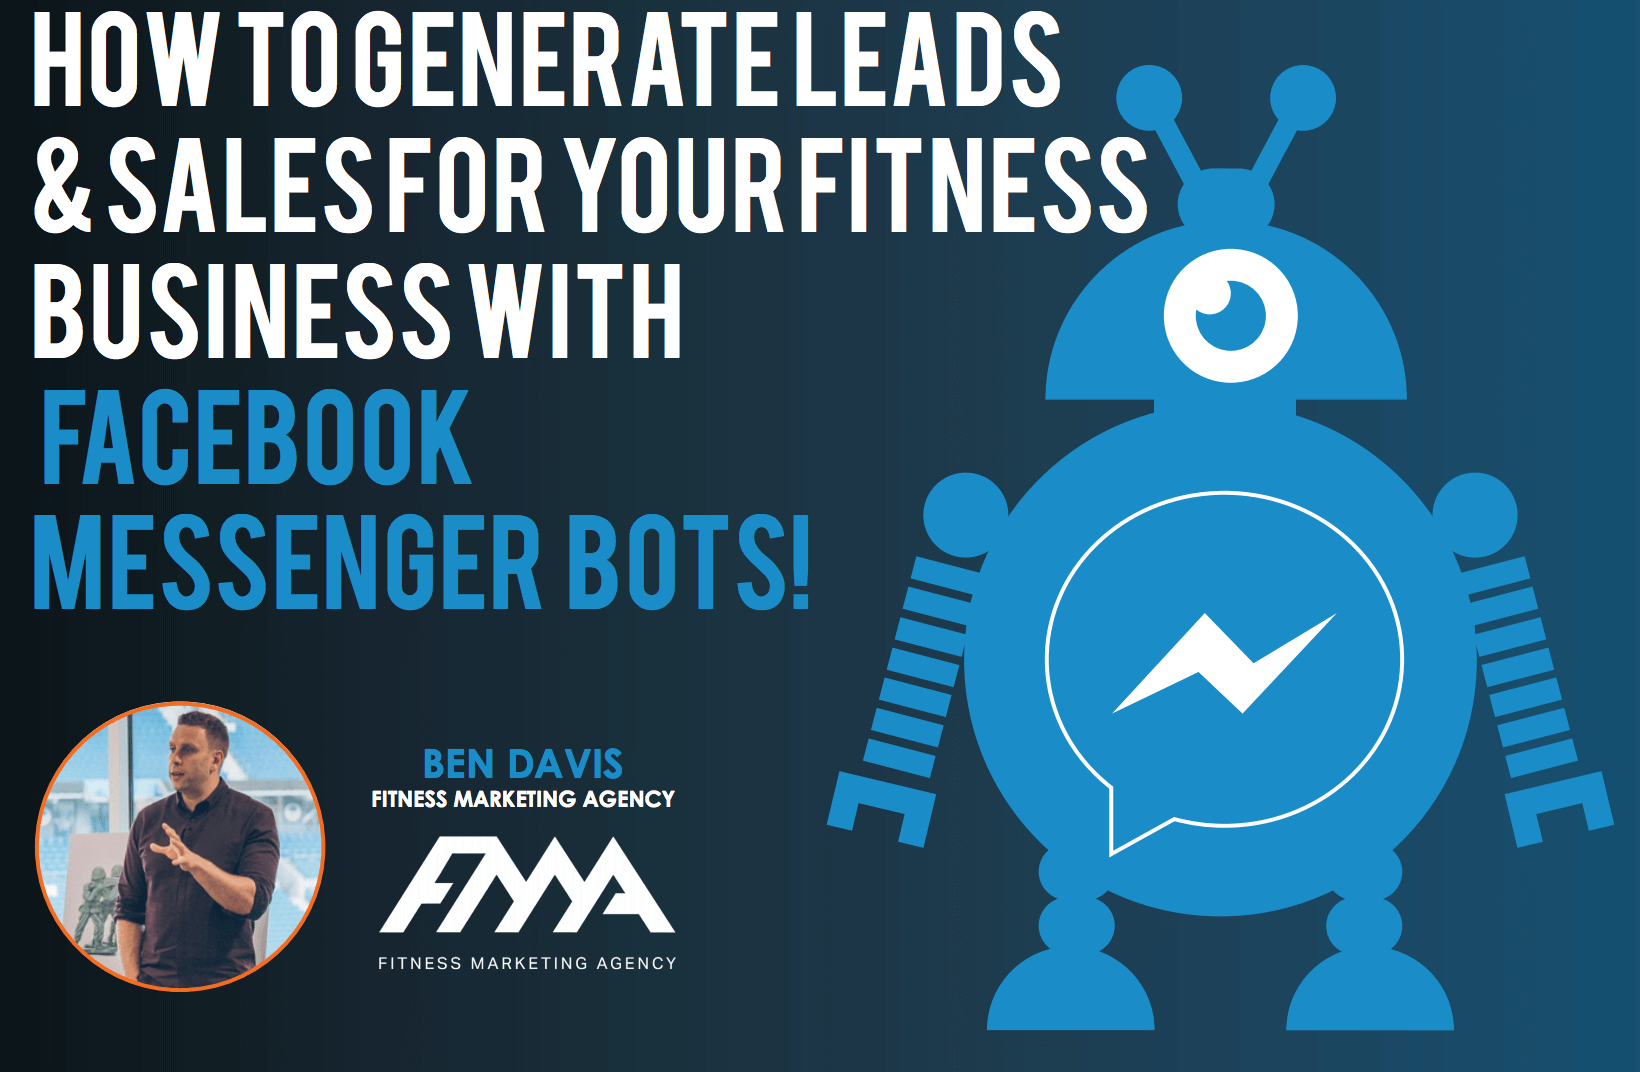 facebook messenger bots for fitness business lead generation